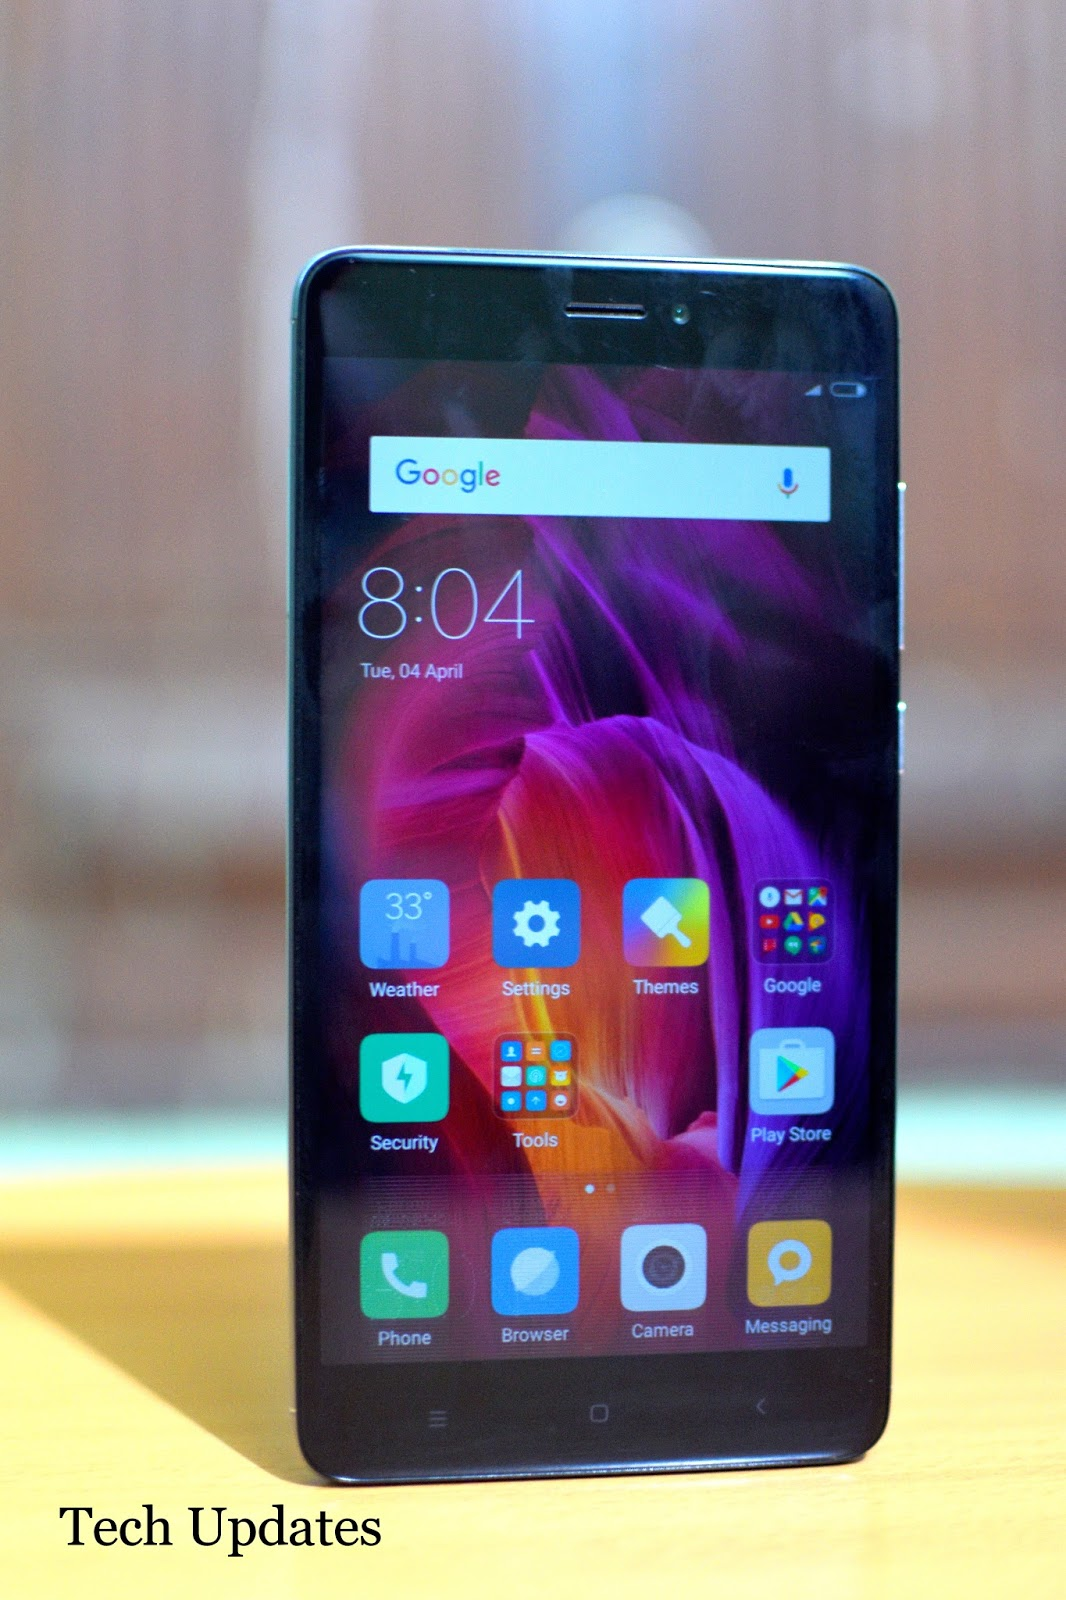 Xiaomi Mobile Phones With Snapdragon 625 Processor Tech Updates Smartphone Red Mi Redmi Note4 Ram 3gb Emmc 64gb Dual Sim 4g Note 4 Has A Metal Body It Features 55 Inch 1920 X 1080 Pixels Full Hd Display 25d Curved Glass Powered By 20 Ghz Qualcomm